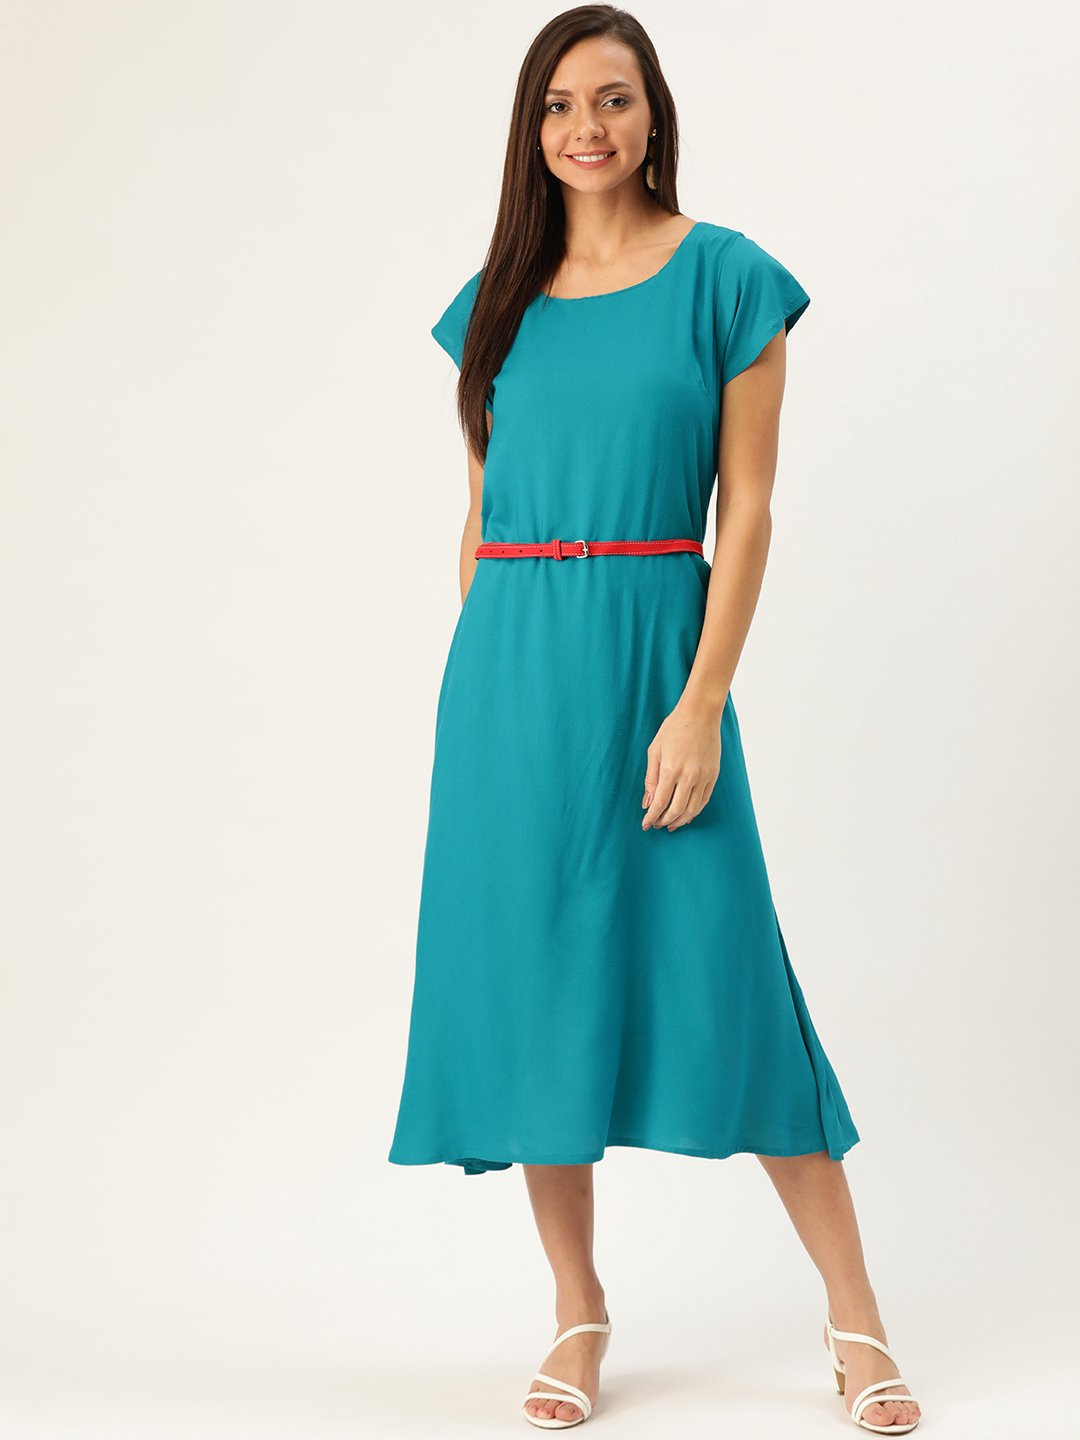 Aqua Blue Dress Red Belt